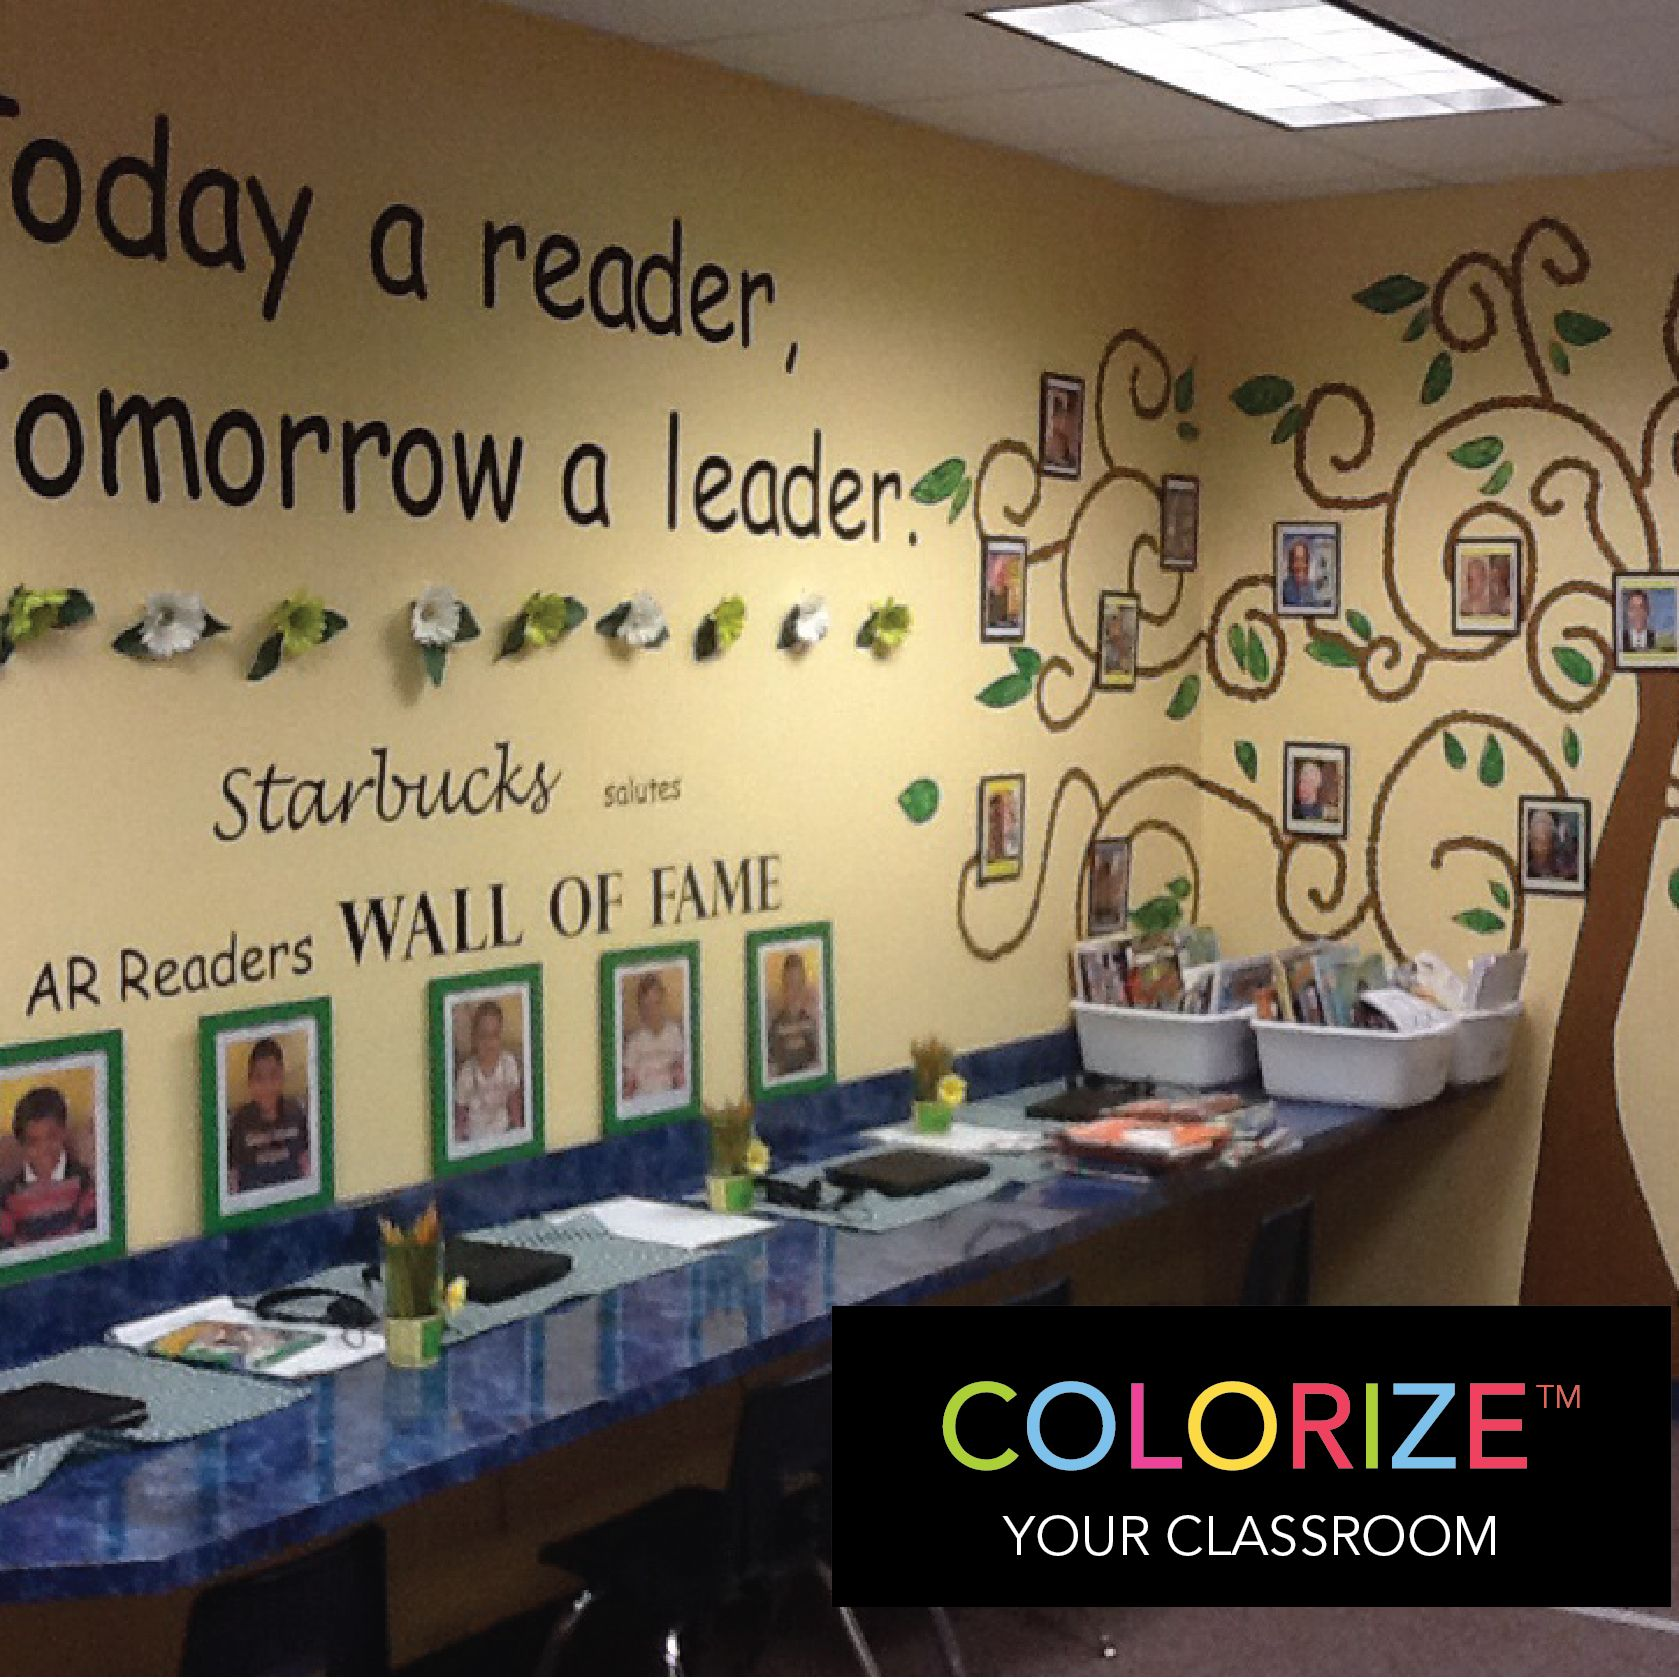 This week's Astrobrights Teacher Spotlight is, Karen Lee, who teaches 2nd Grade at Oak Park Elementary in Louisiana. Thanks, Karen, for sharing how you #ColorizeYourClassroom with this colorful Reading Wall of Fame! Don't forget to enter to WIN your own Astrobrights Papers at www.colorizeyourclassroom.com